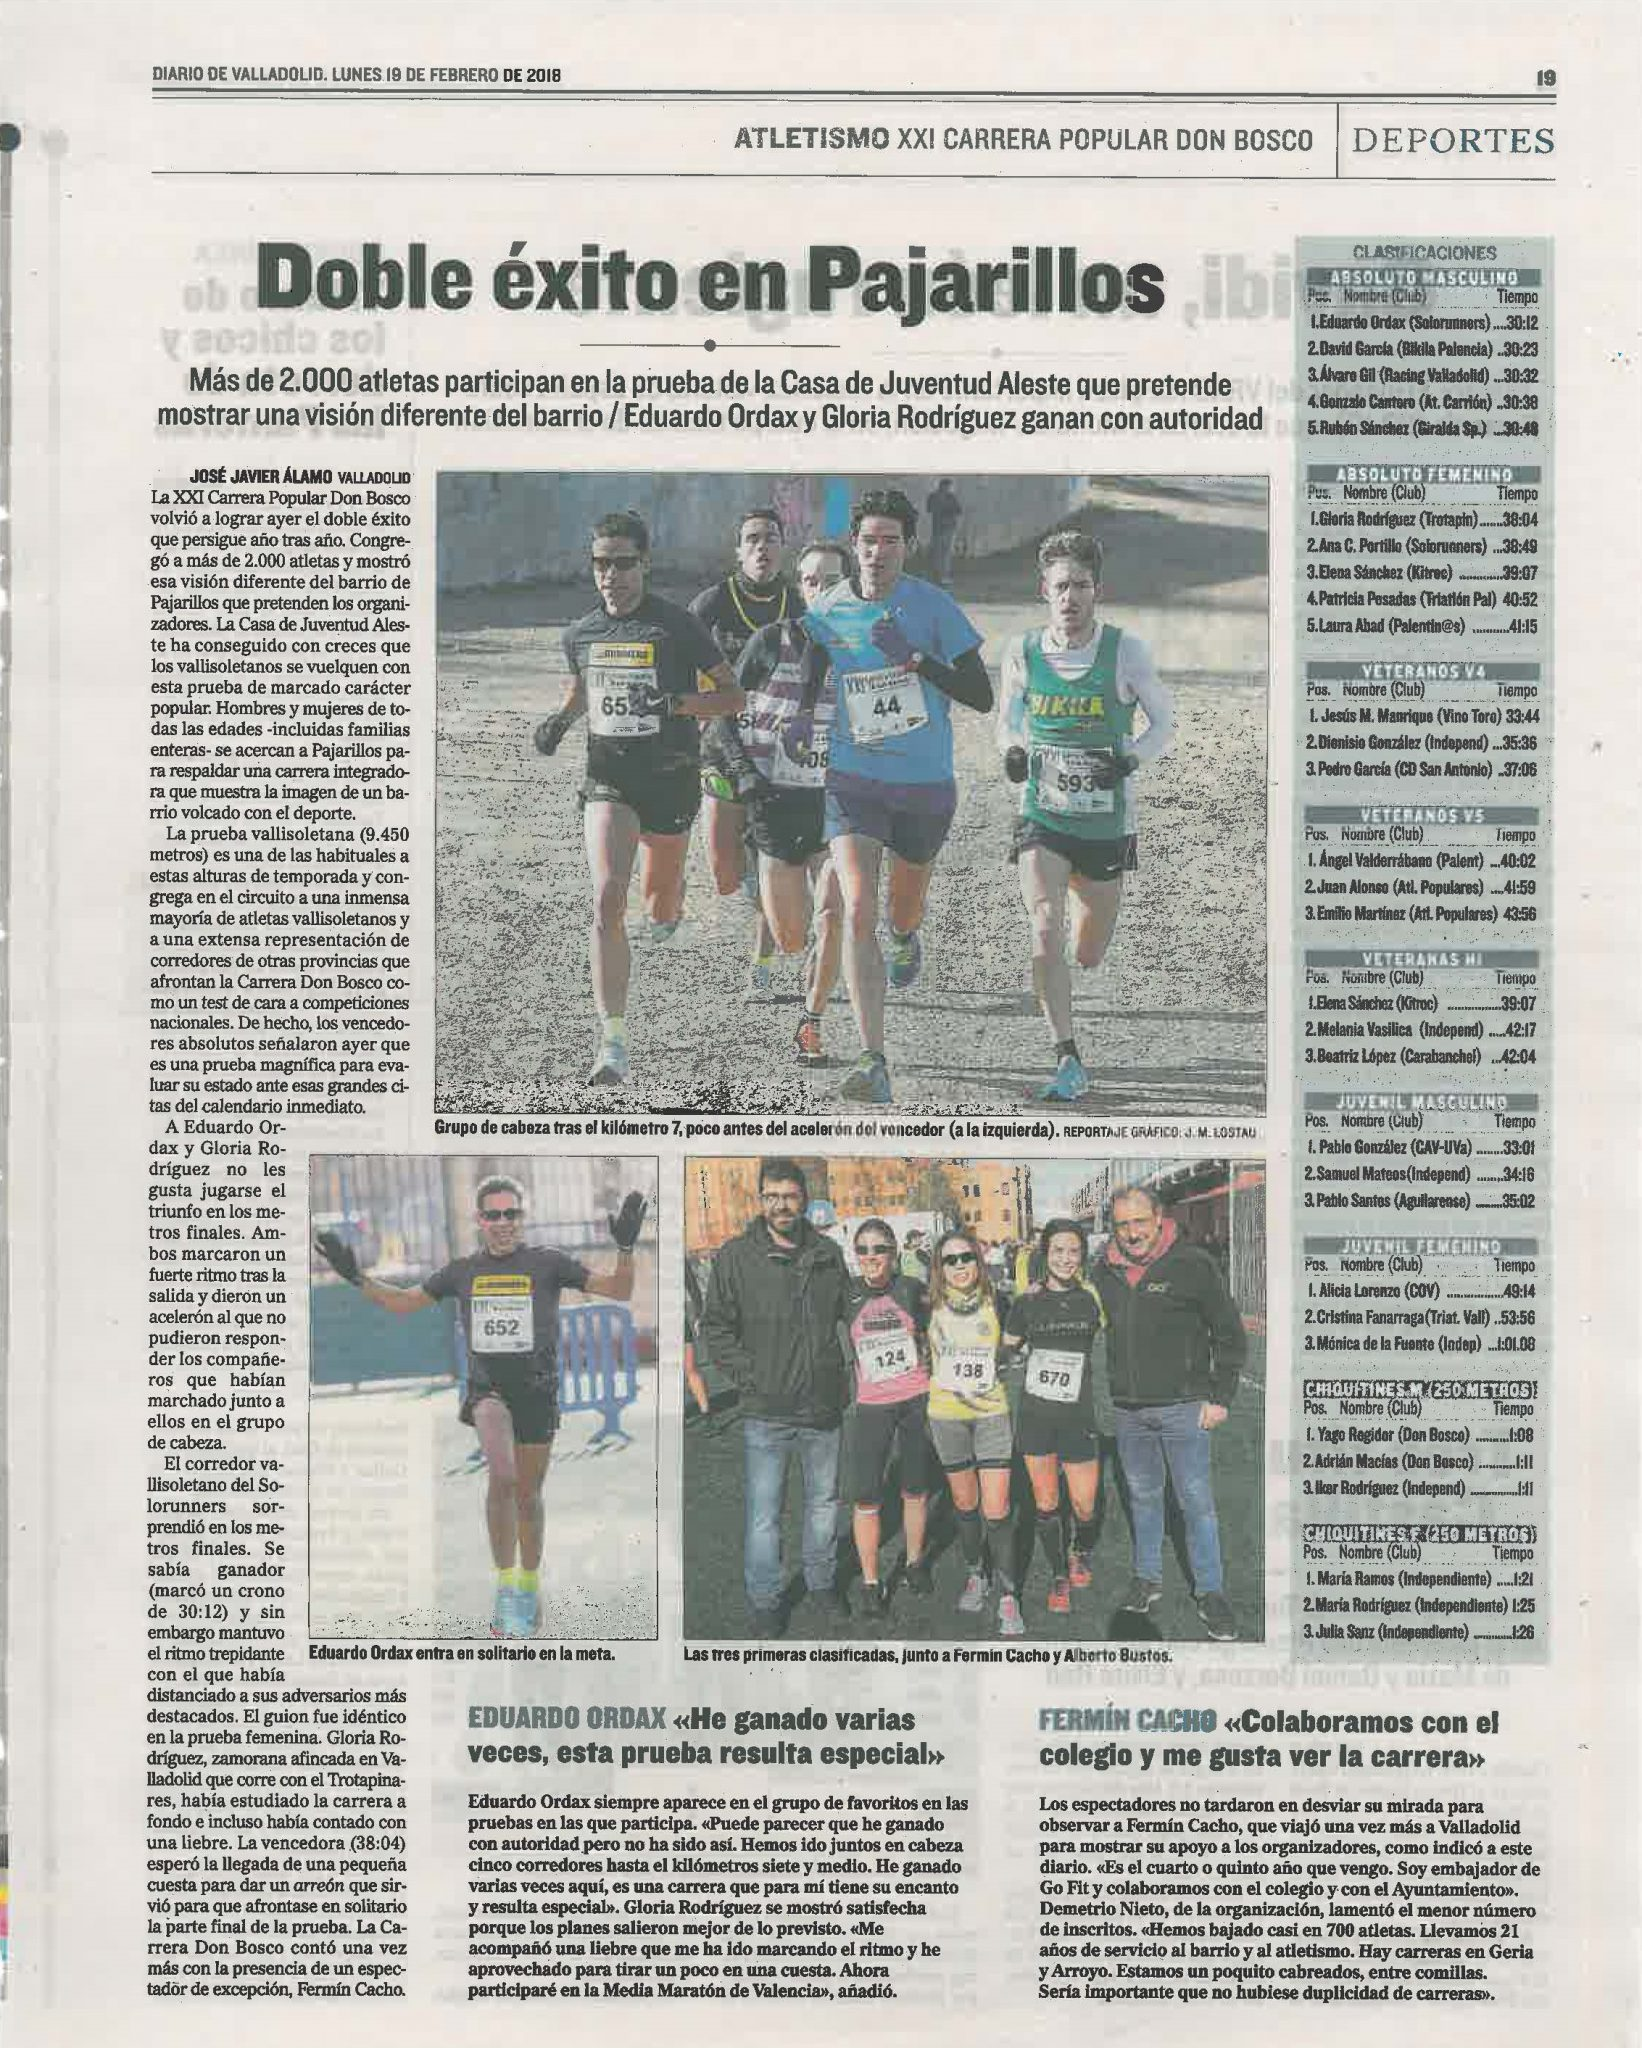 PRENSA XXI CARRERA POPULAR DON BOSCO